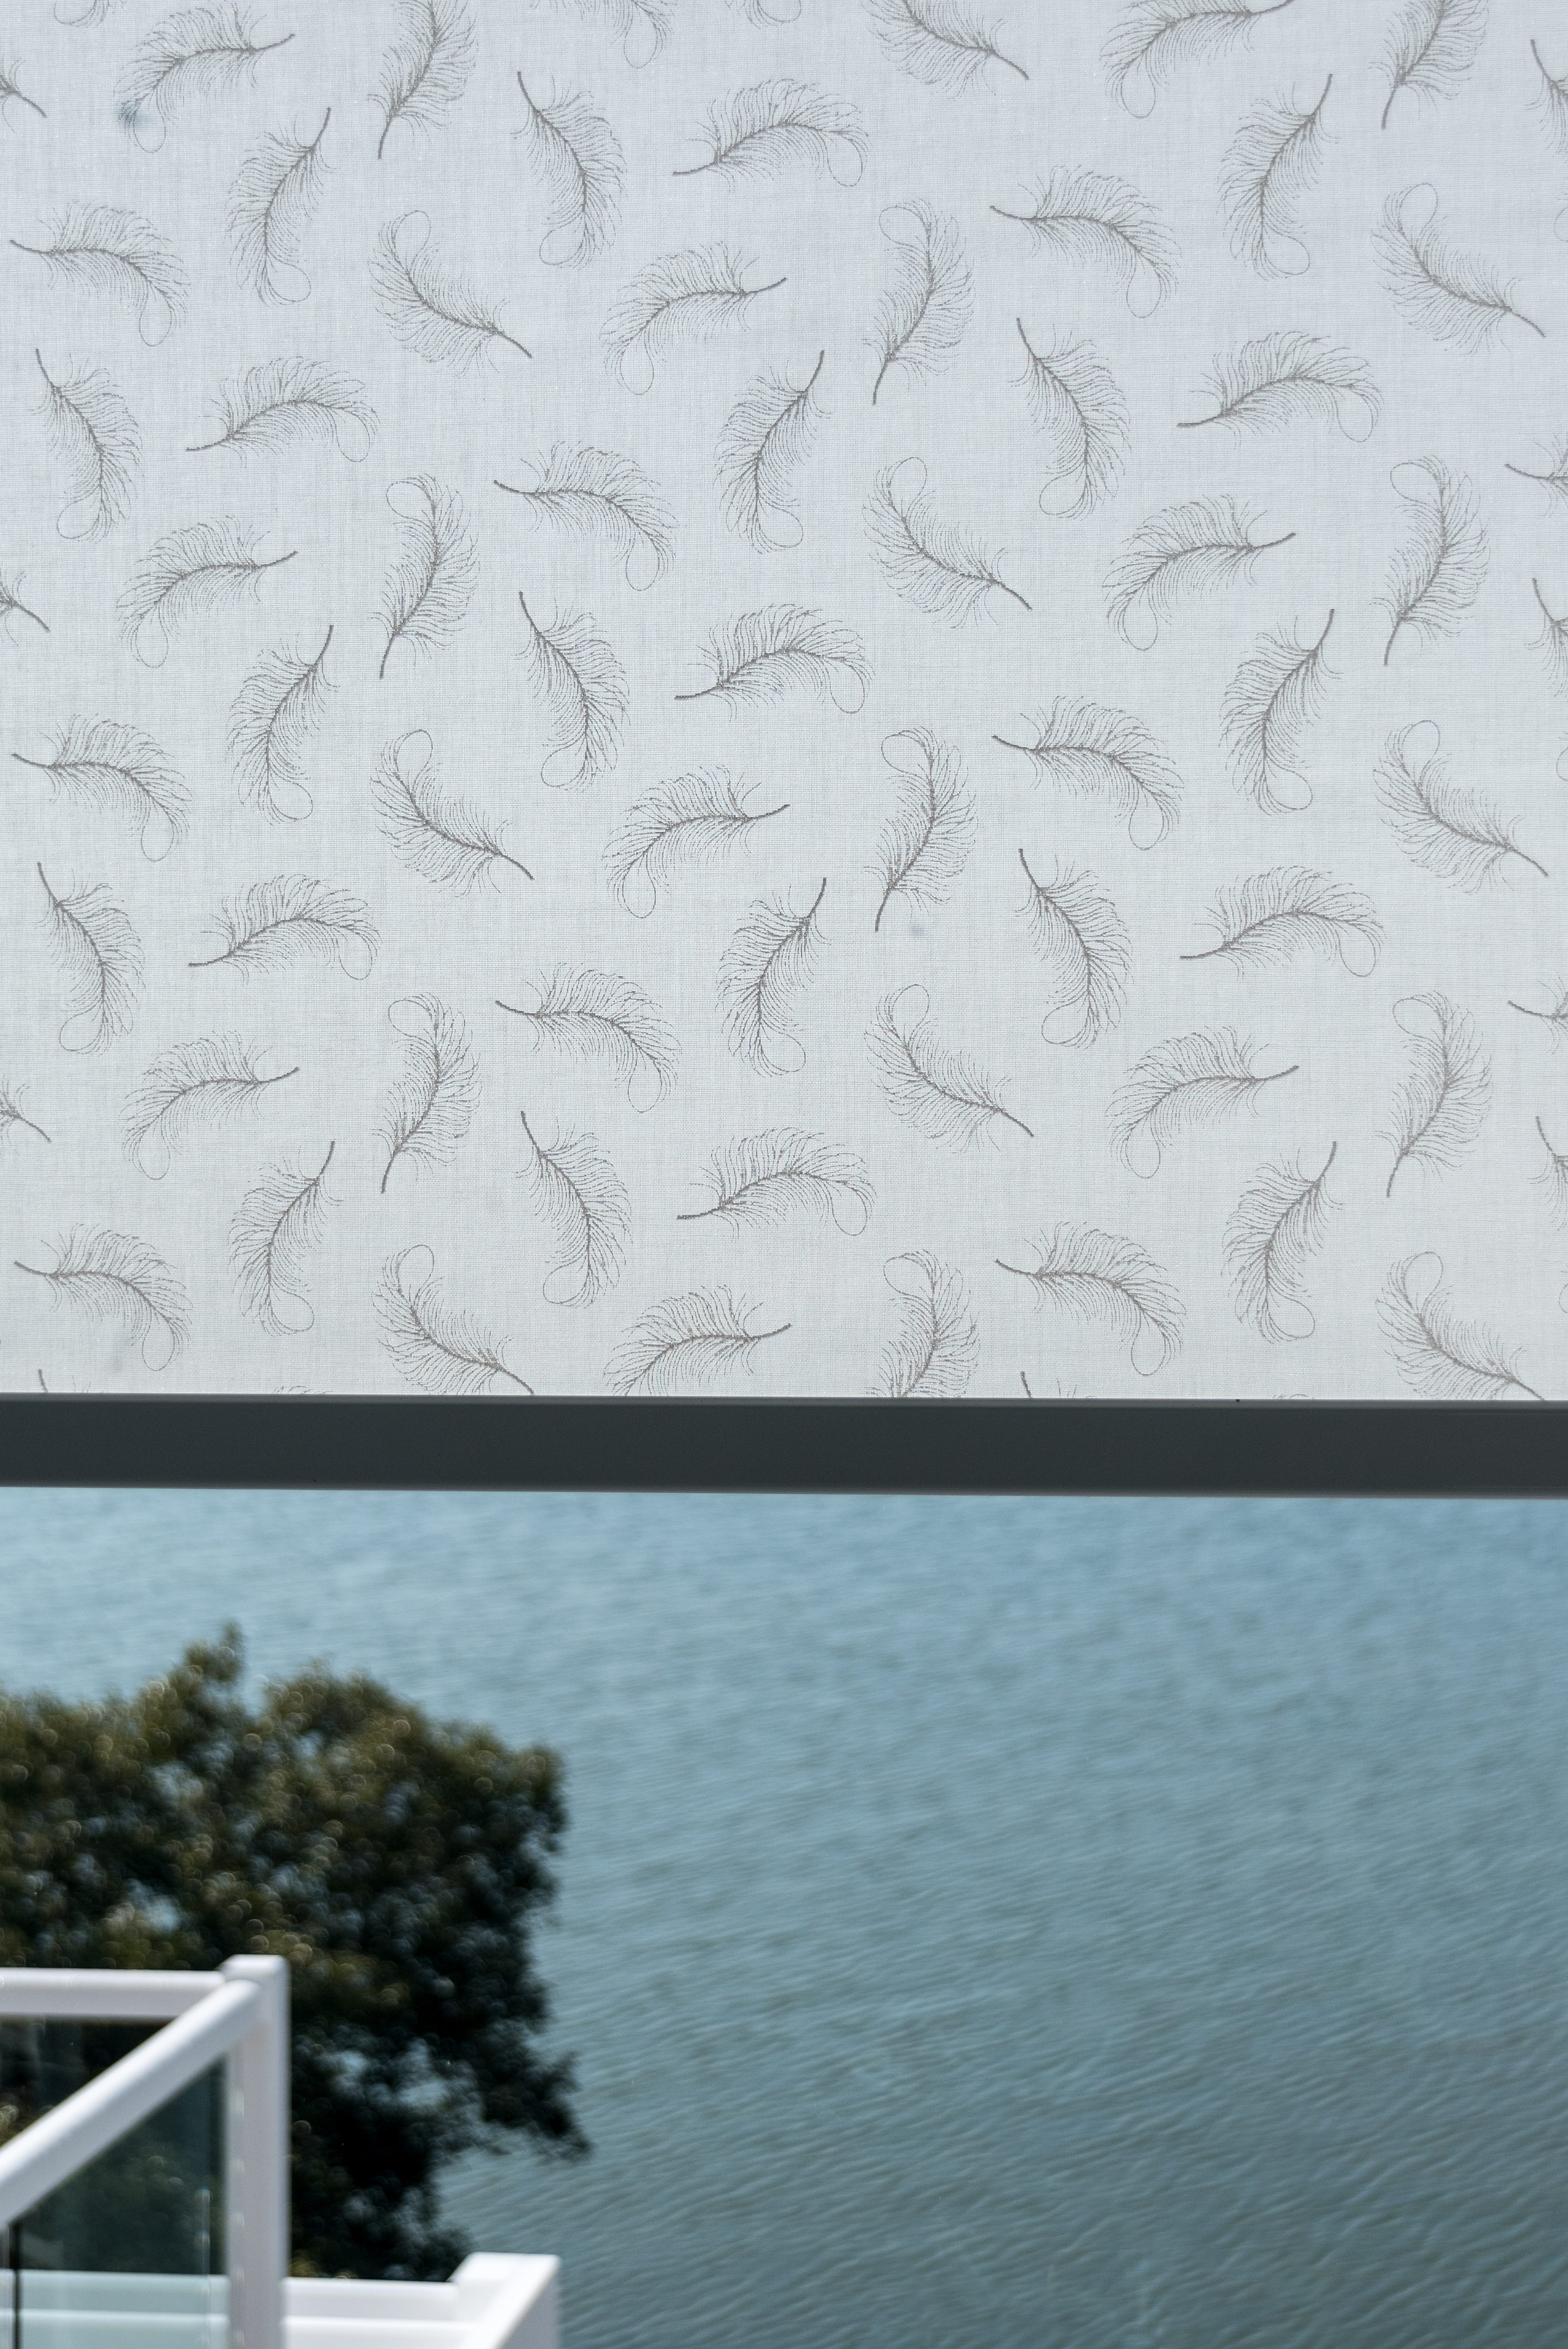 Patterned sun control blind